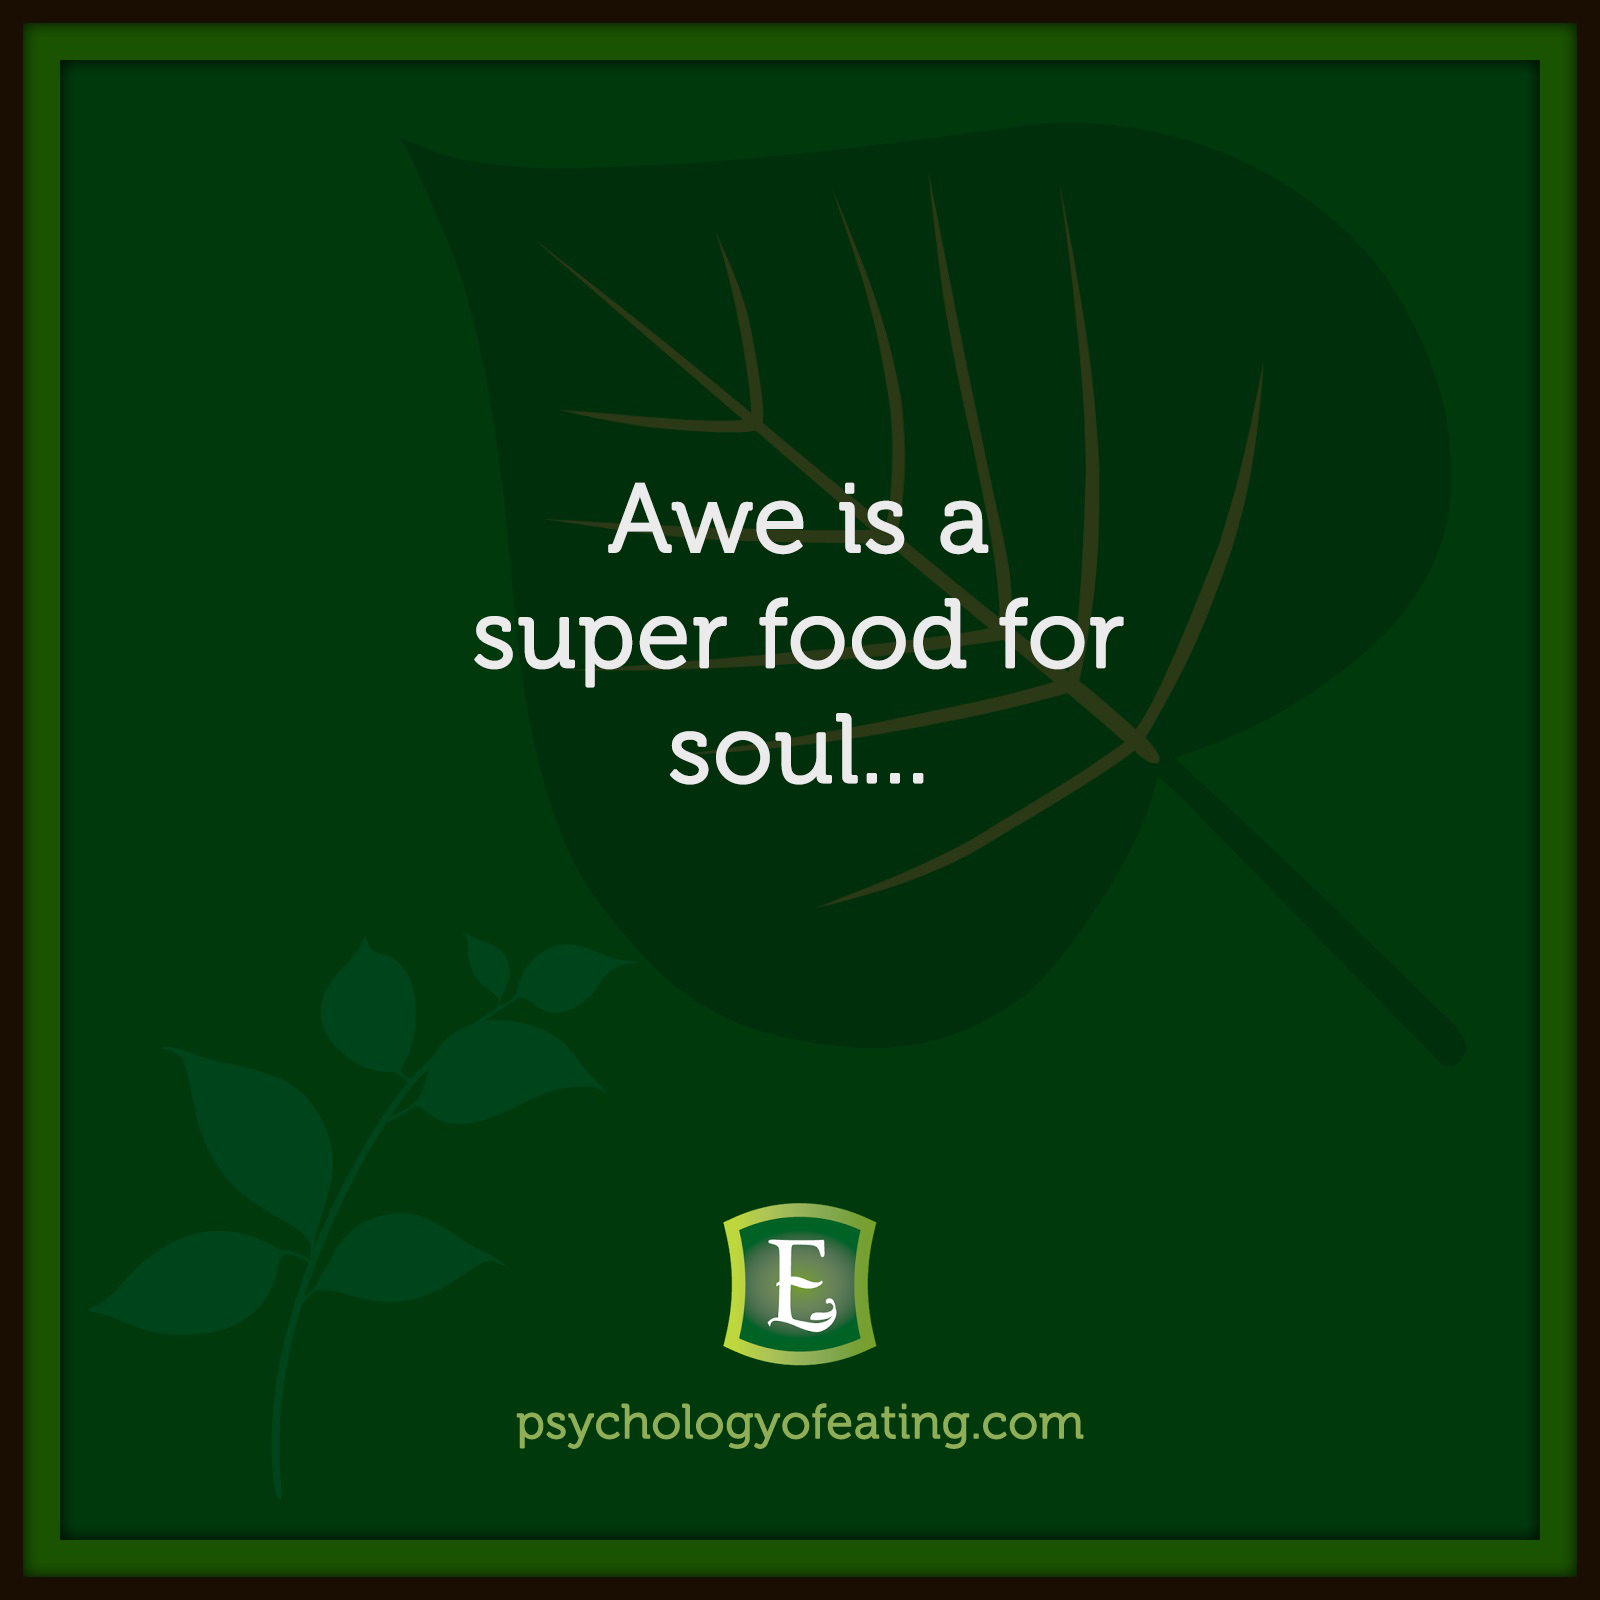 Awe is a super food for soul…   #health #nutrition #eatingpsychology #IPE